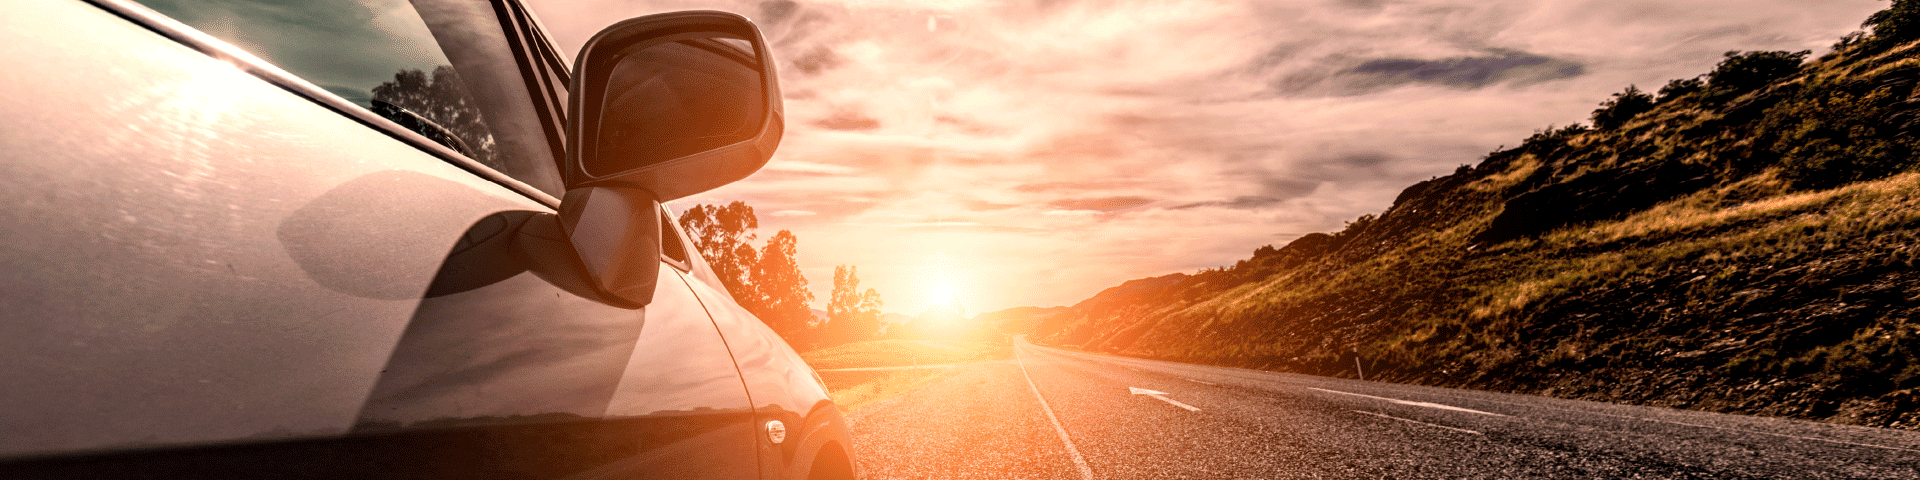 Image of a car driving down a highway with mountains on the right side and the sun setting.